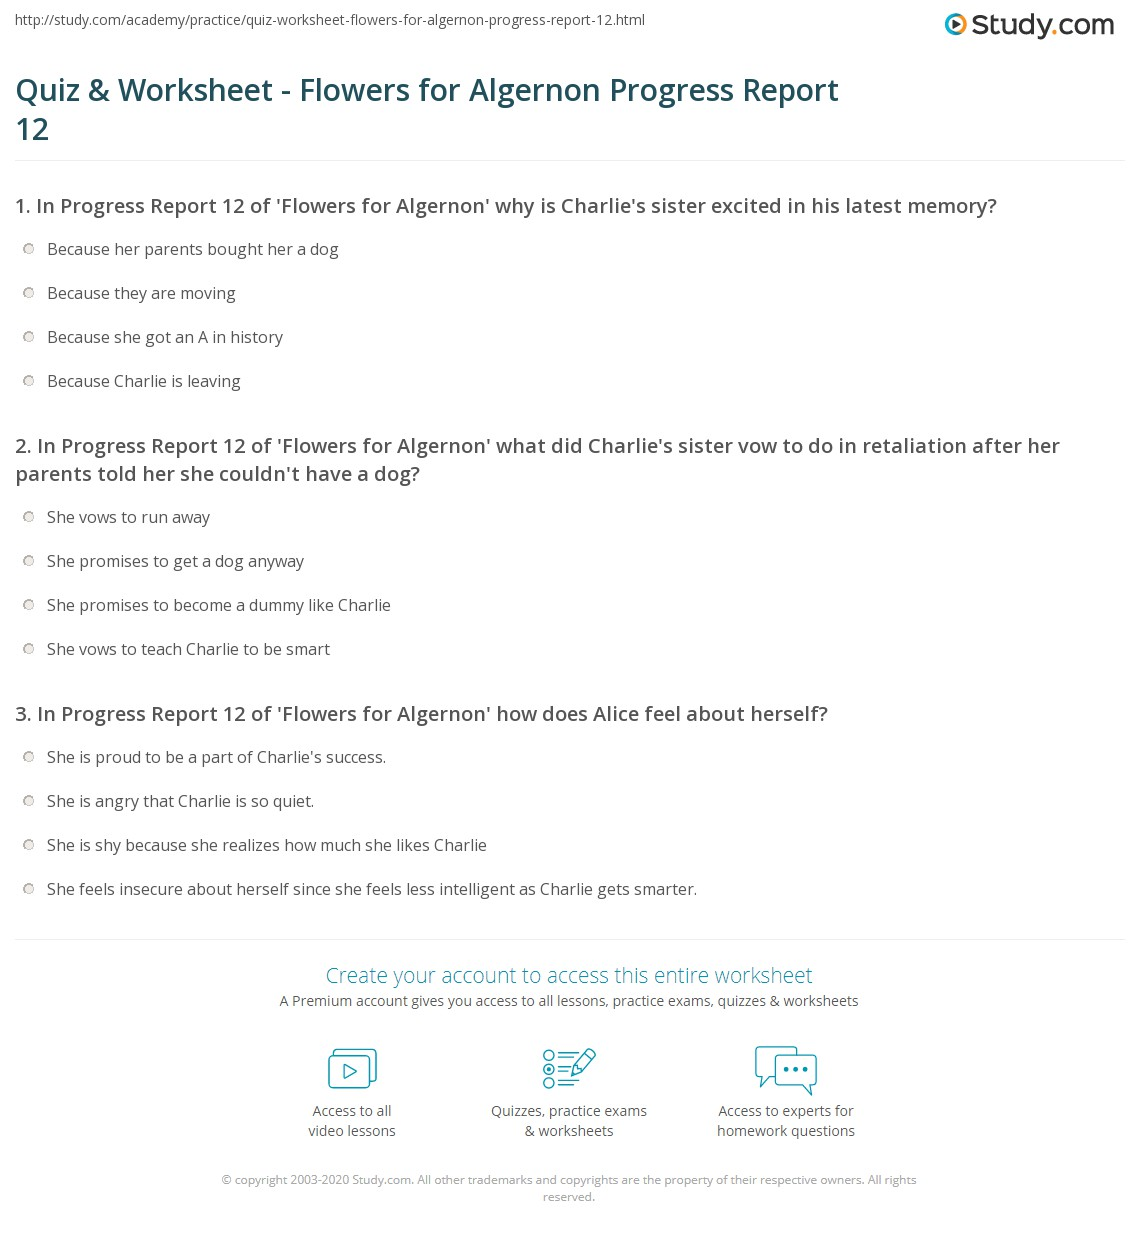 Worksheets Flowers For Algernon Worksheets quiz worksheet flowers for algernon progress report 12 study com print summary worksheet